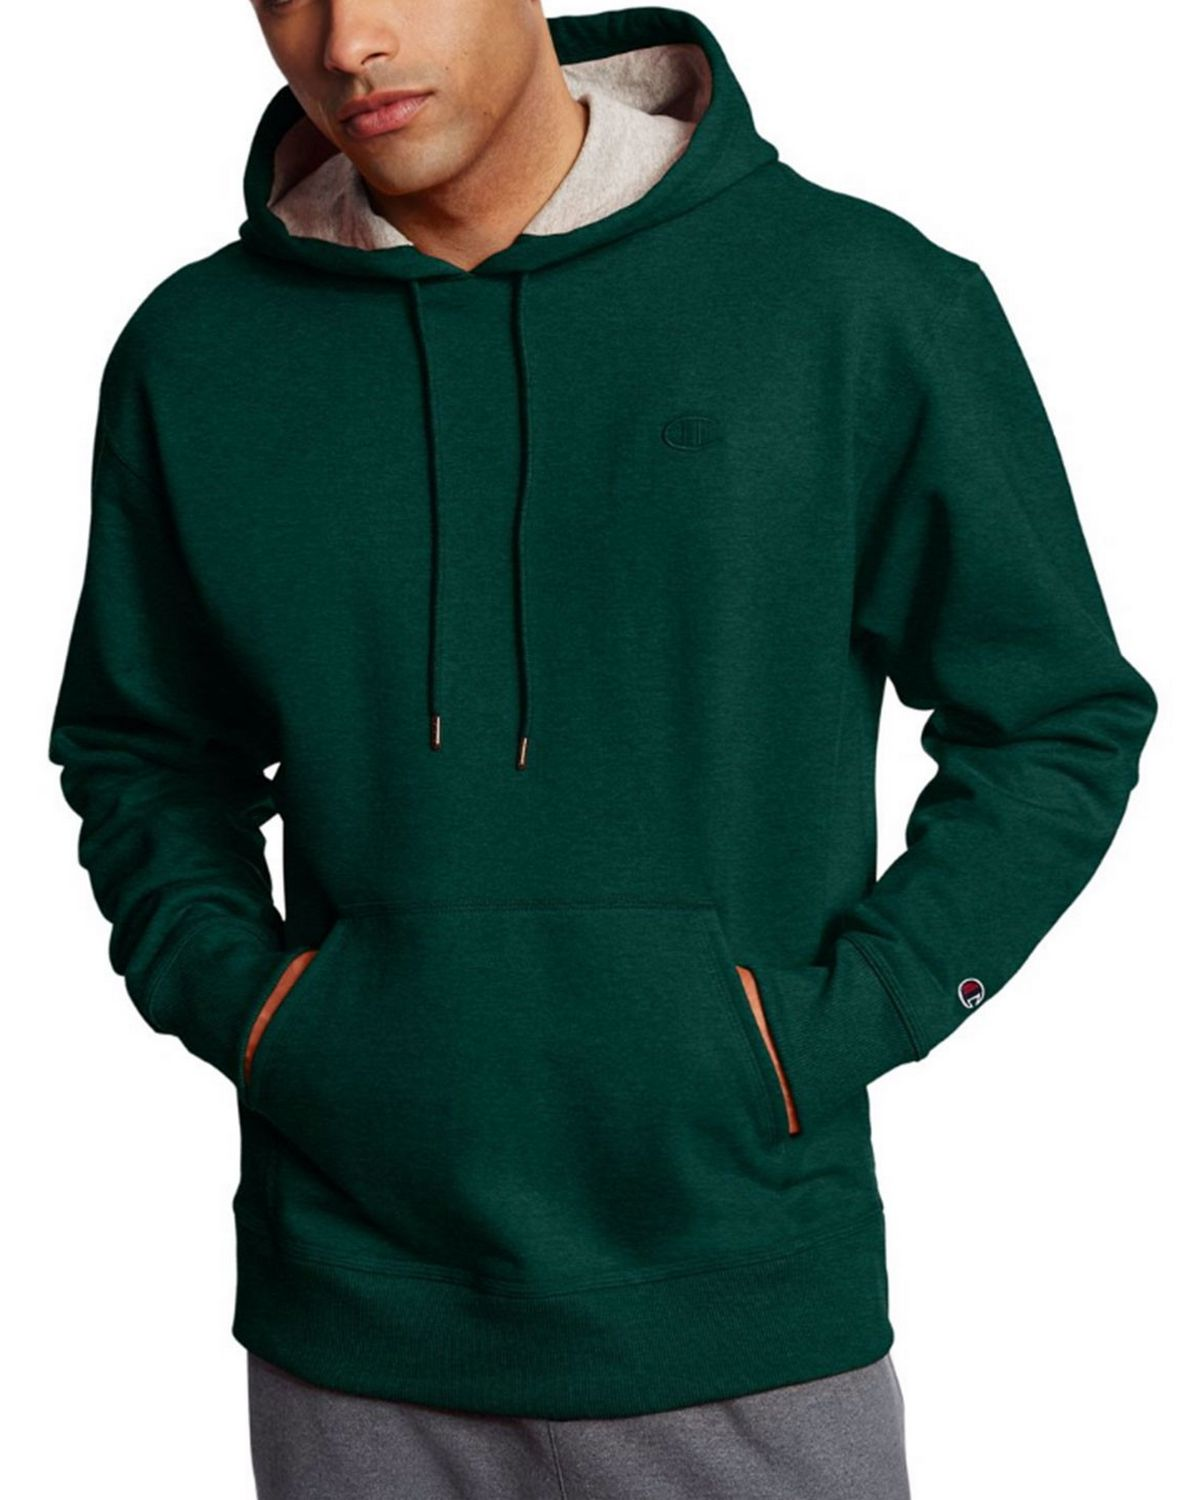 Champion S0889 Mens Fleece Pullover Hoodie - Granite Heather - L S0889